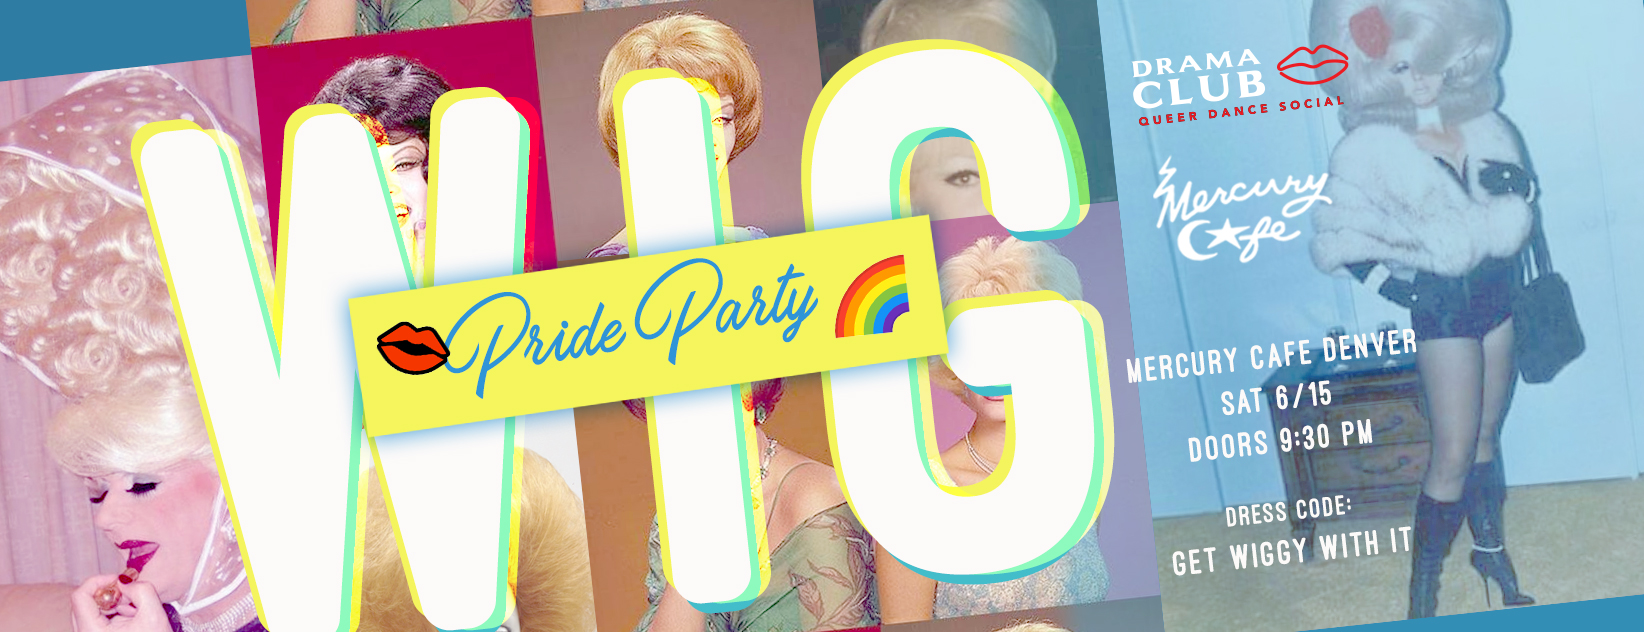 WigPrideParty-CoverImage.jpg